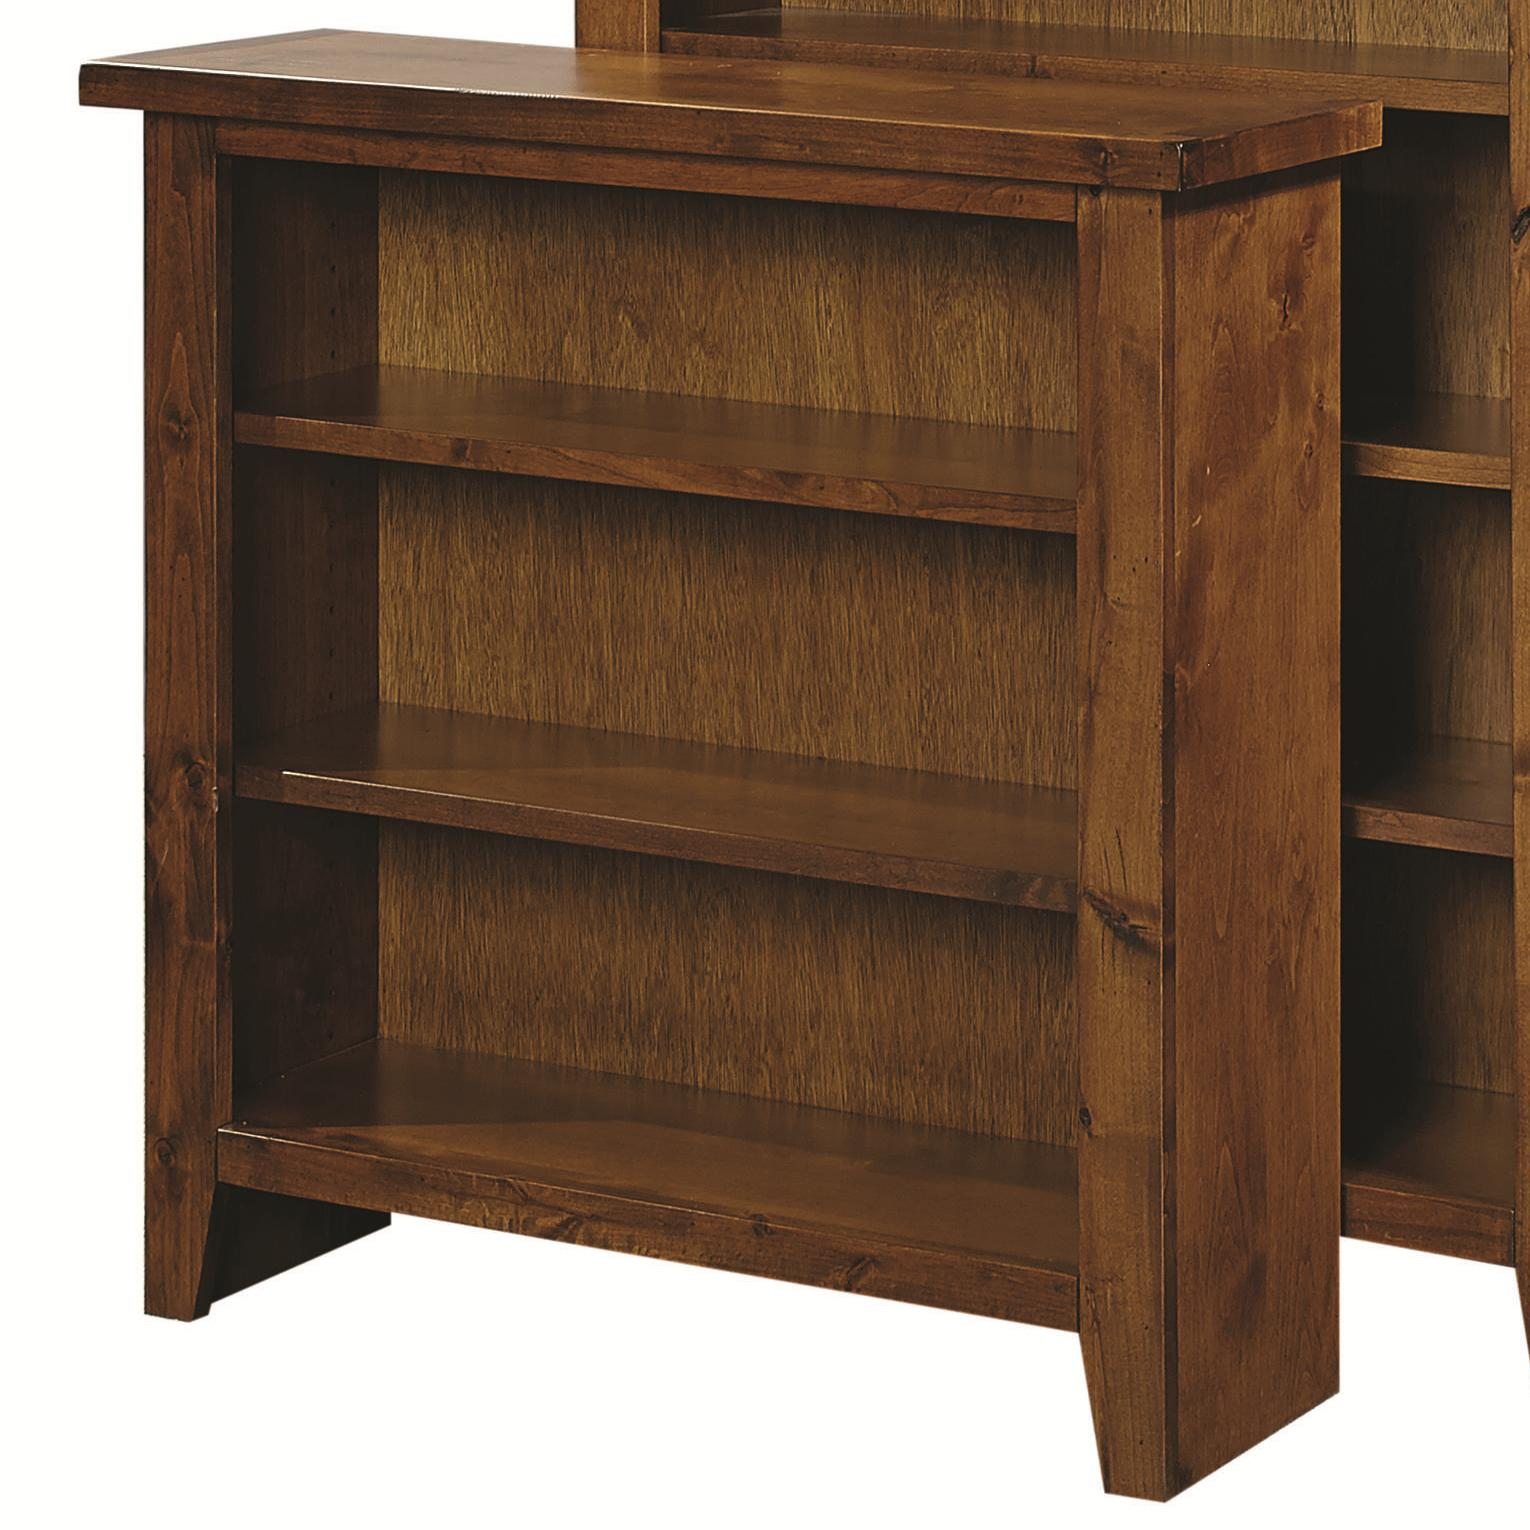 """Alder Grove 36"""" Height Bookcase with 2 Shelves by Aspenhome at Baer's Furniture"""